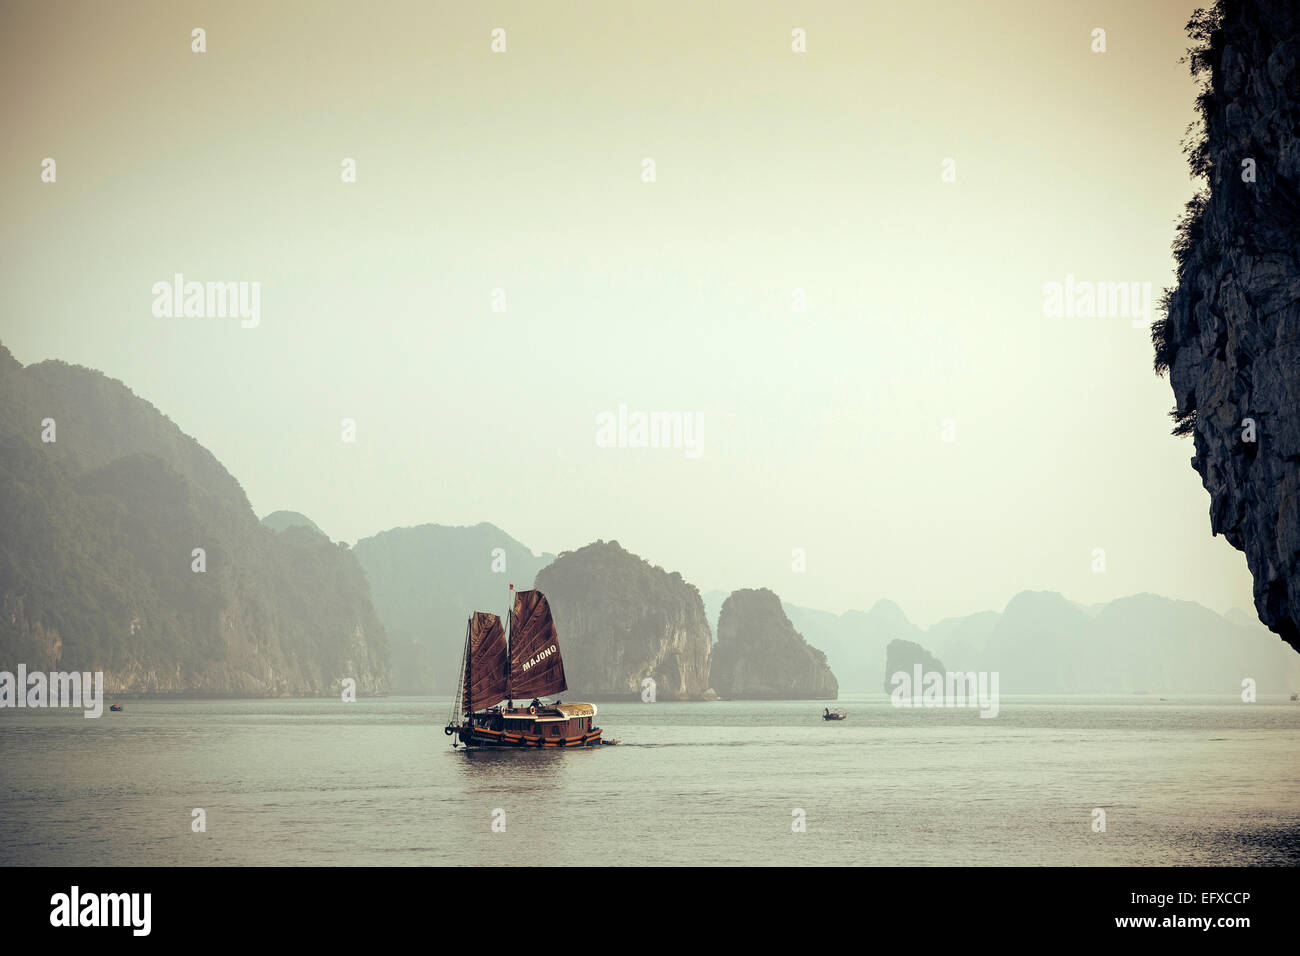 Junk boat sailing at Halong Bay, Vietnam - Stock Image